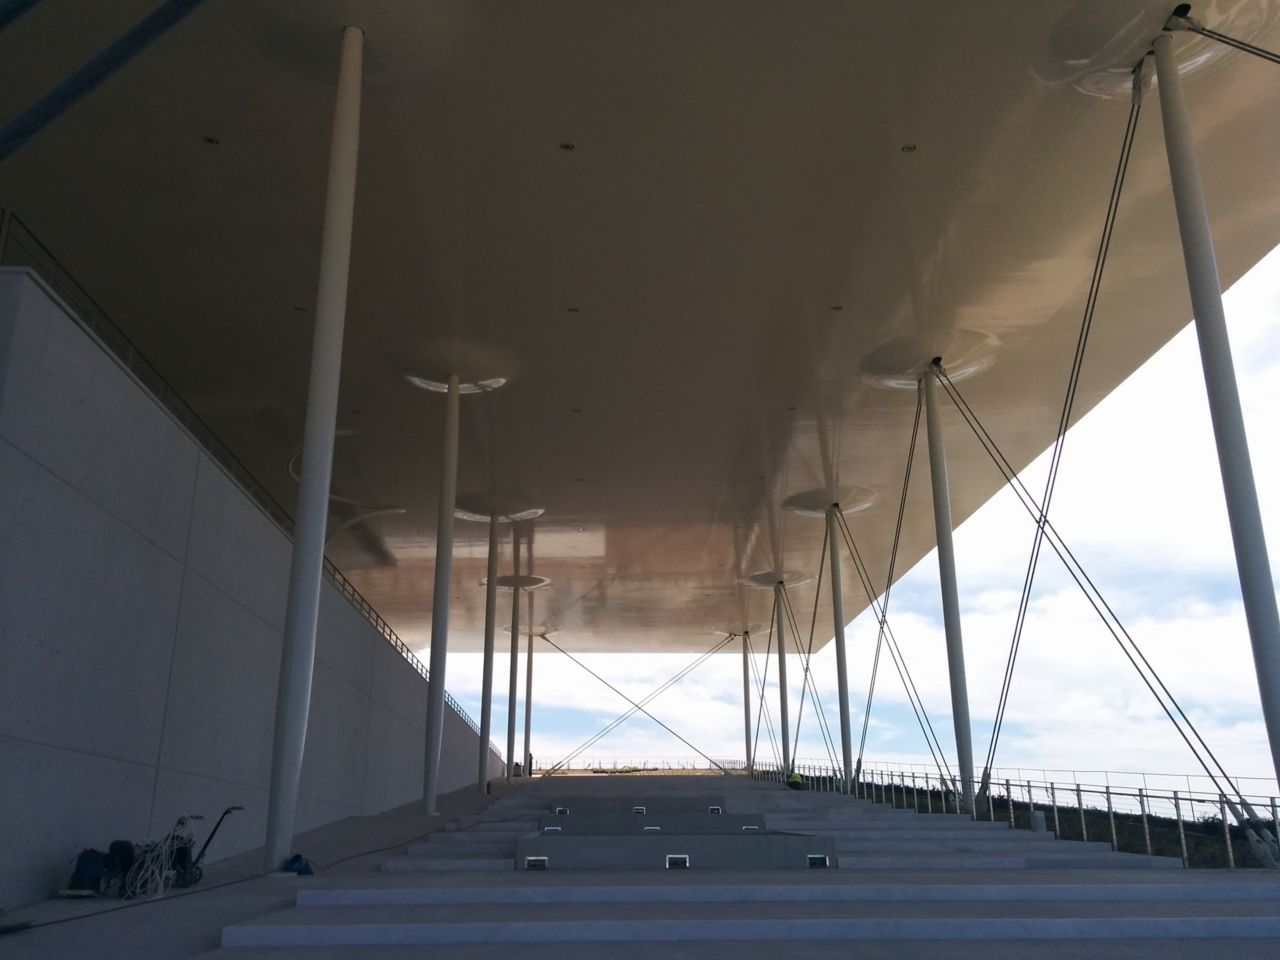 Ferrocement canopy construction at the Stavros Niarchos Foundation Cultural Center